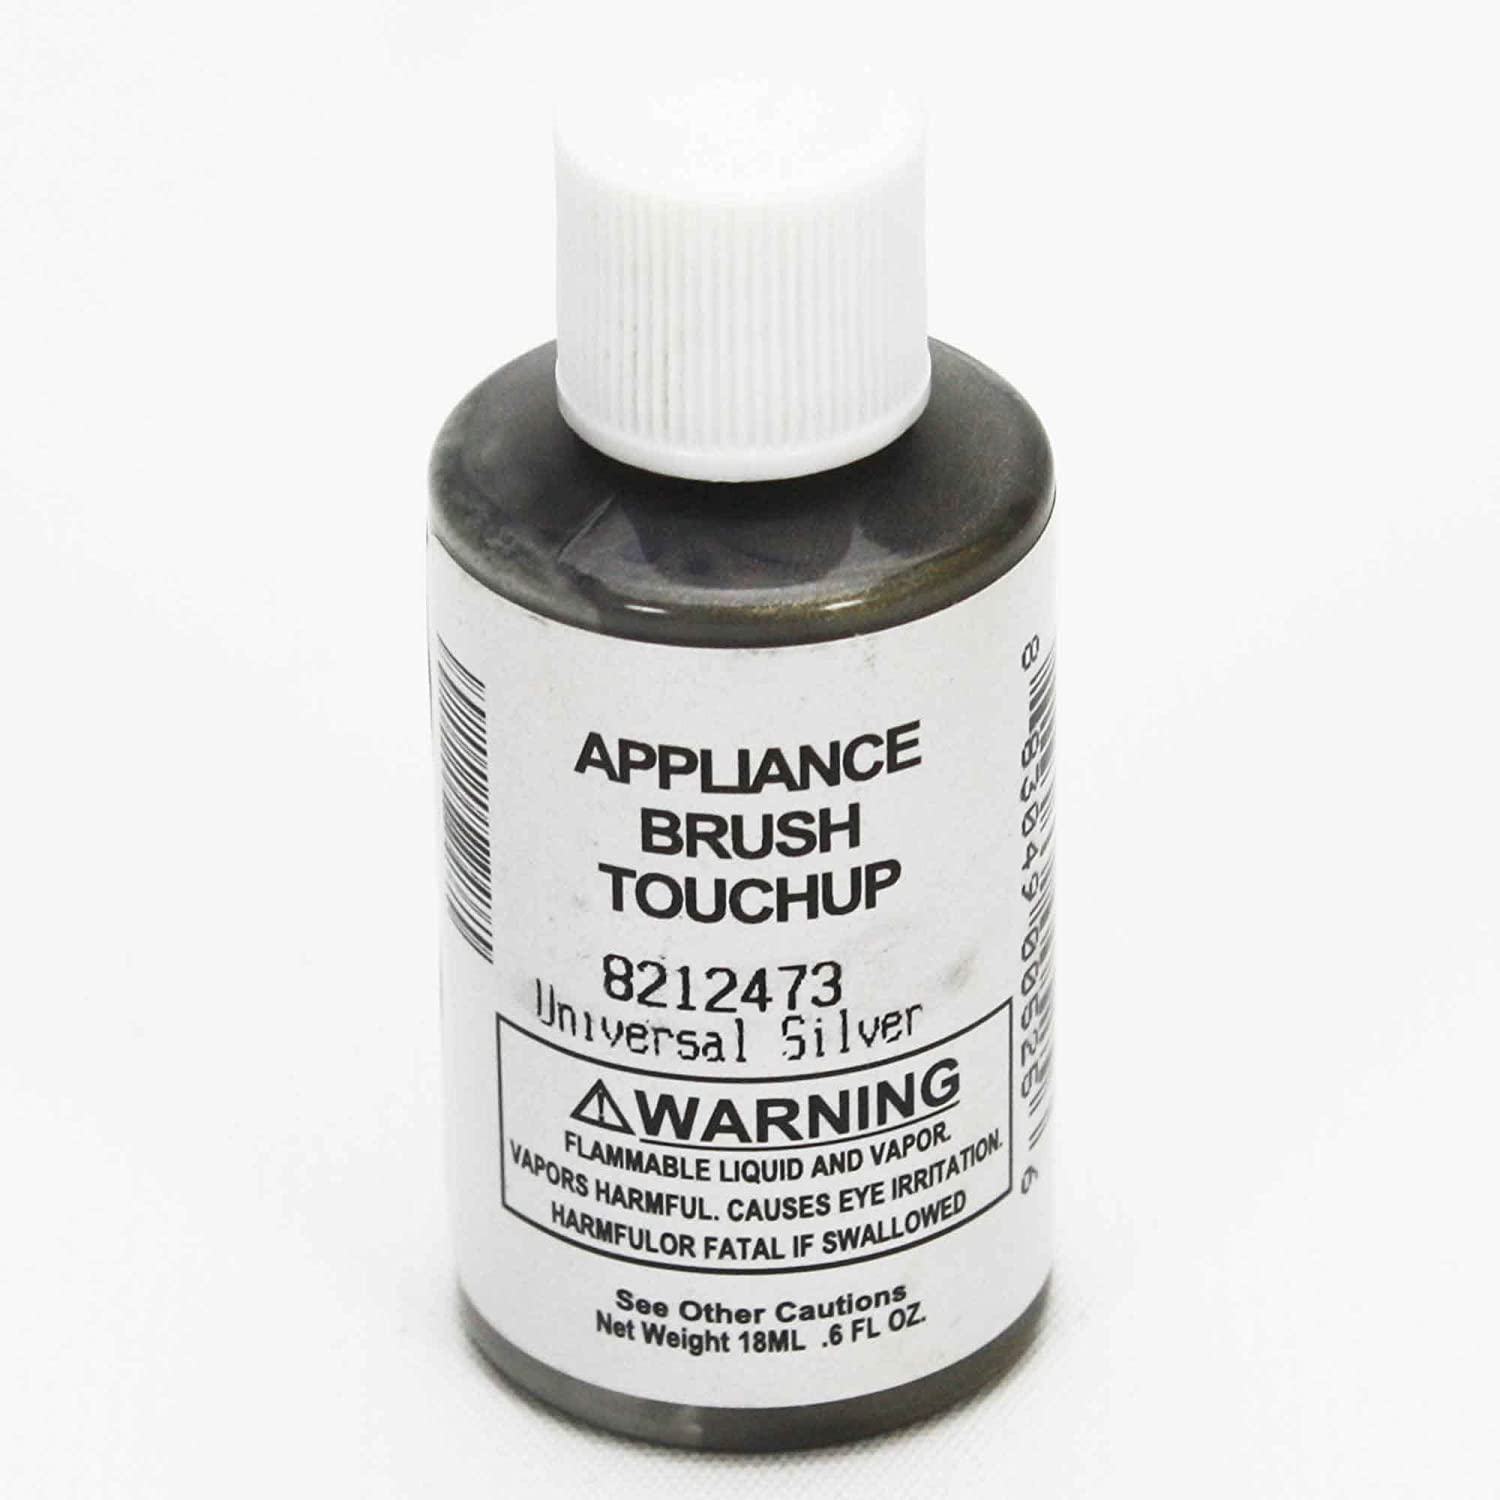 Whirlpool 8212473 Appliance Touch Up Paint 0 6 Oz Silver Genuine Original Equipment Manufacturer Oem Part For Whirlpool Kitchenaid Kenmore